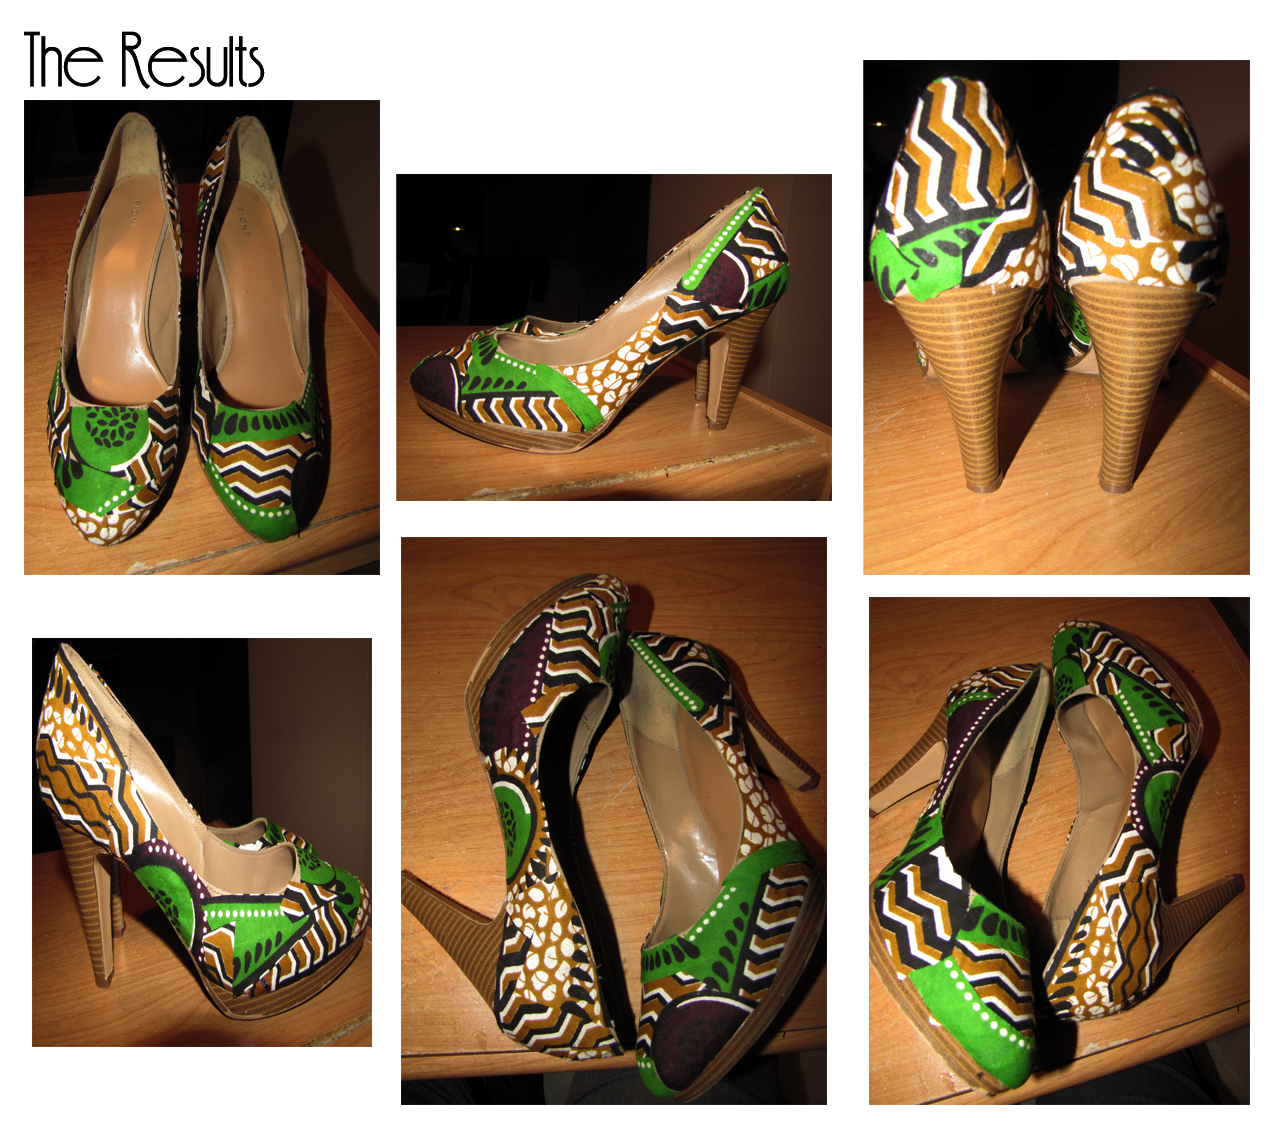 Curvy Geekery: D.I.Y - Giving Shoes the Fabric Treatment